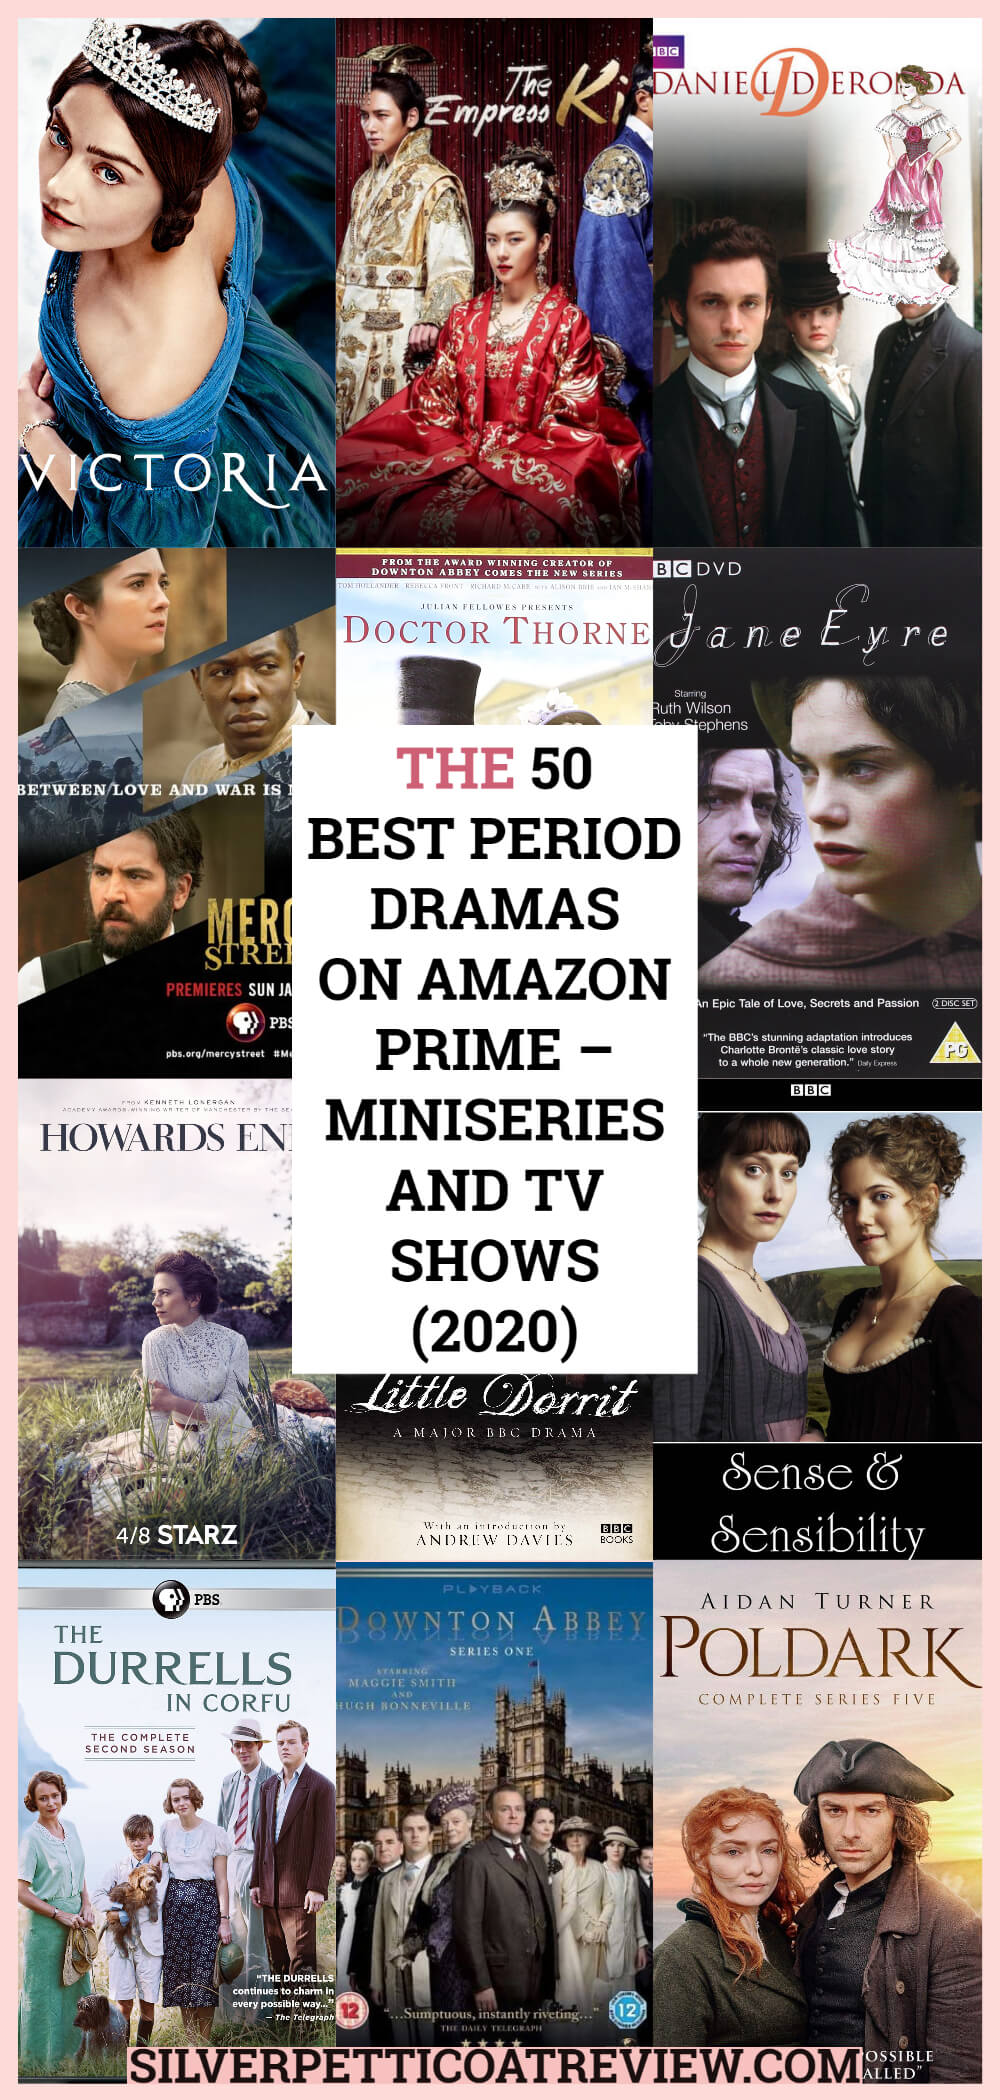 The 50 Best Period Dramas on Amazon Prime – Miniseries and TV Shows (2020) - Pinterest image